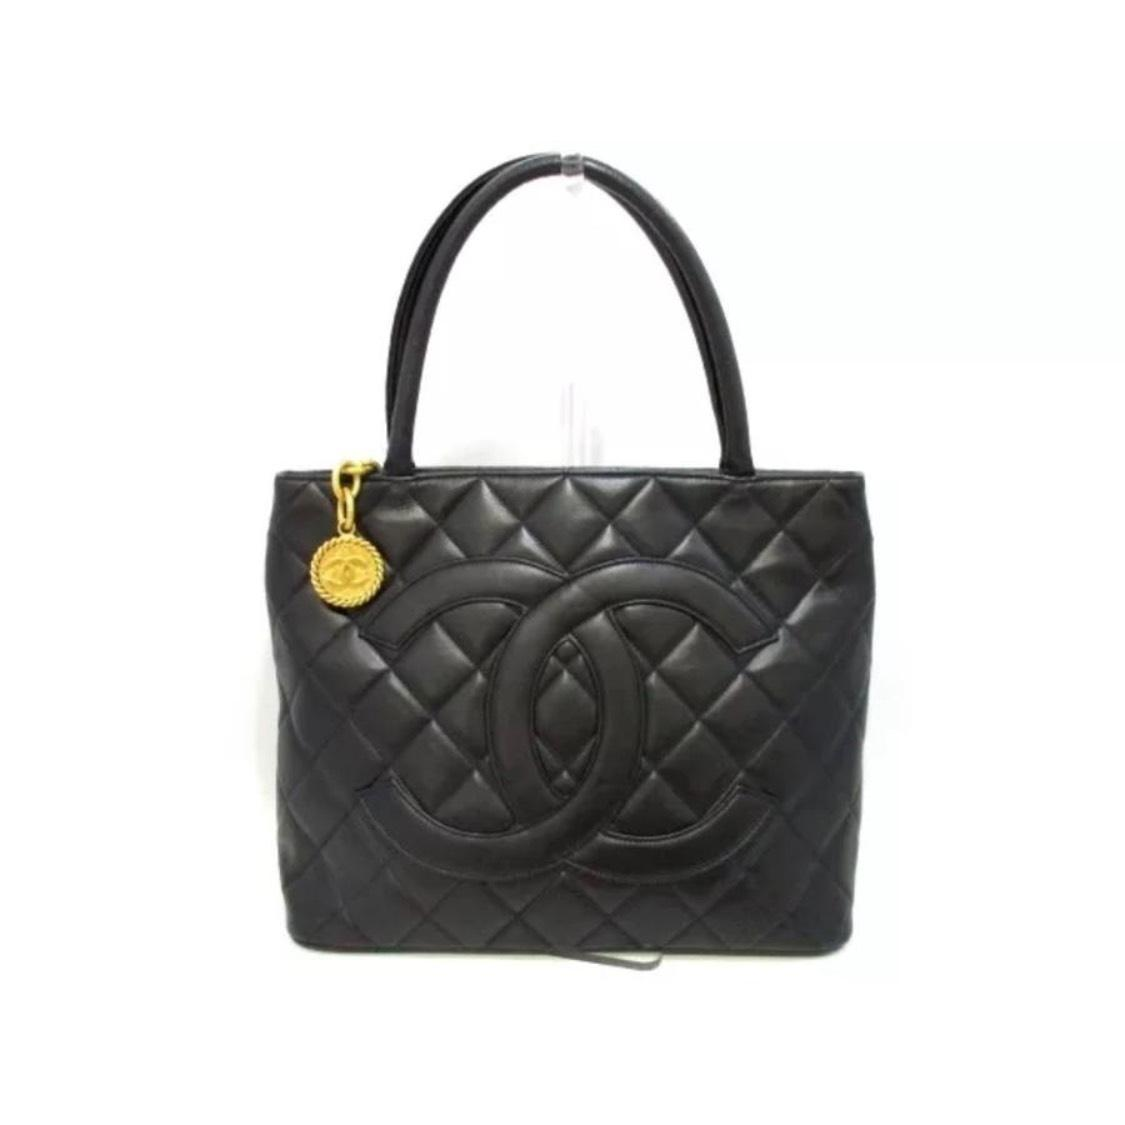 chanel inspired bags. chanel satchel inspired bags s